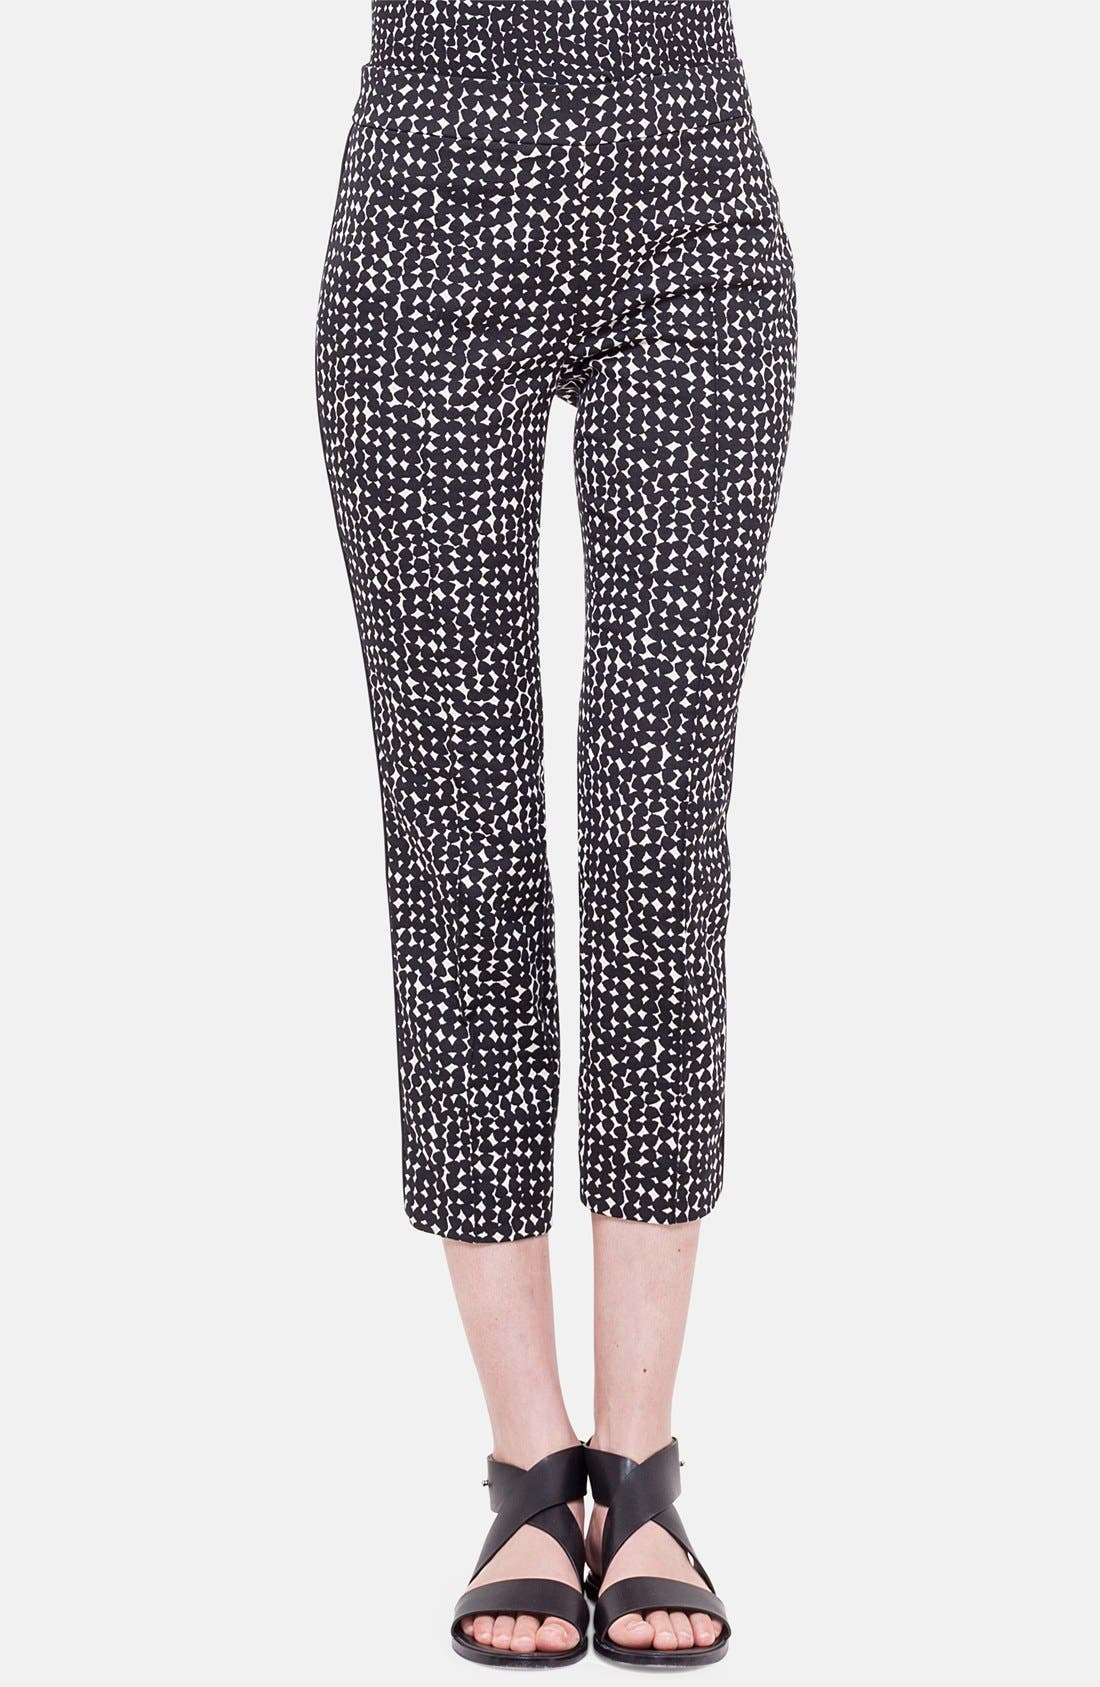 'Francella' Jacquard Crop Pants,                             Main thumbnail 1, color,                             Noir/ Creme